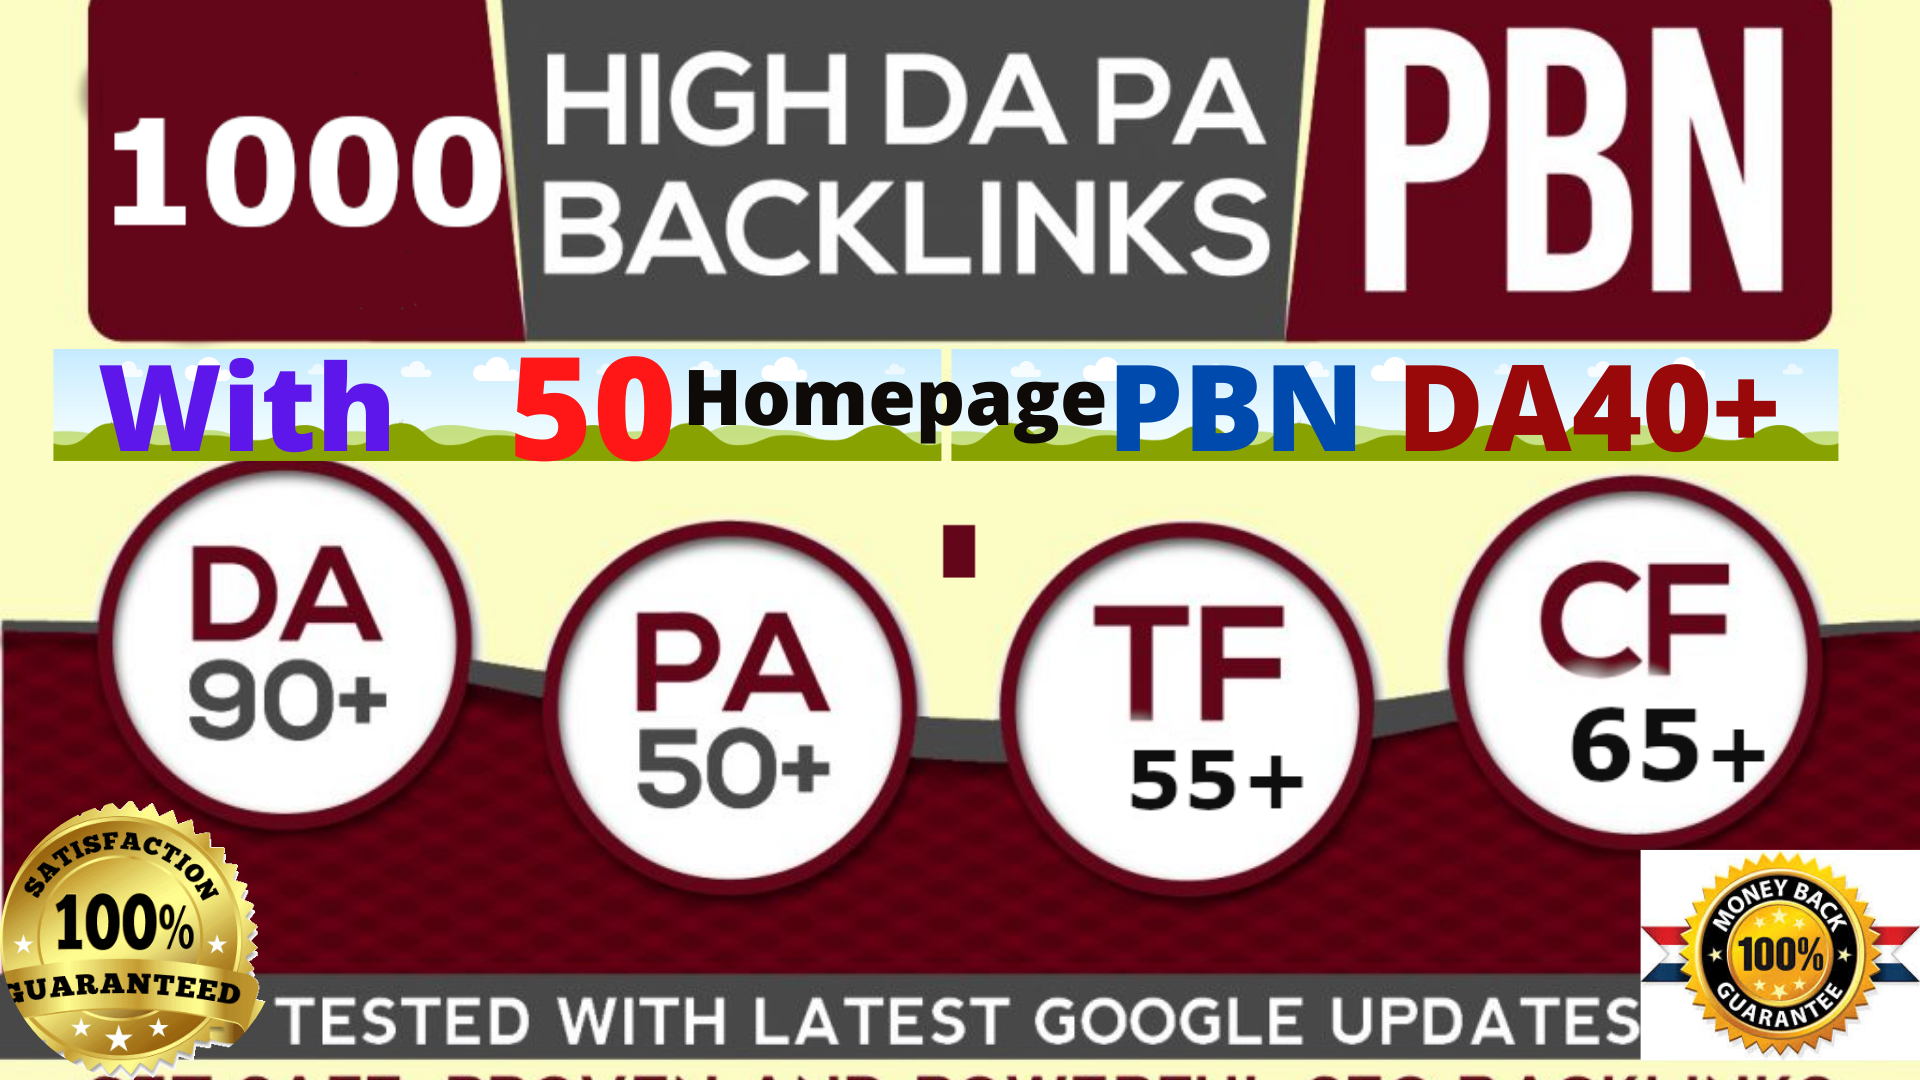 3 Tire With 50 Homepage PBN DA25+ 1000 PLUS strong mixup DA/PA/CF/TF exclusive Backlinks